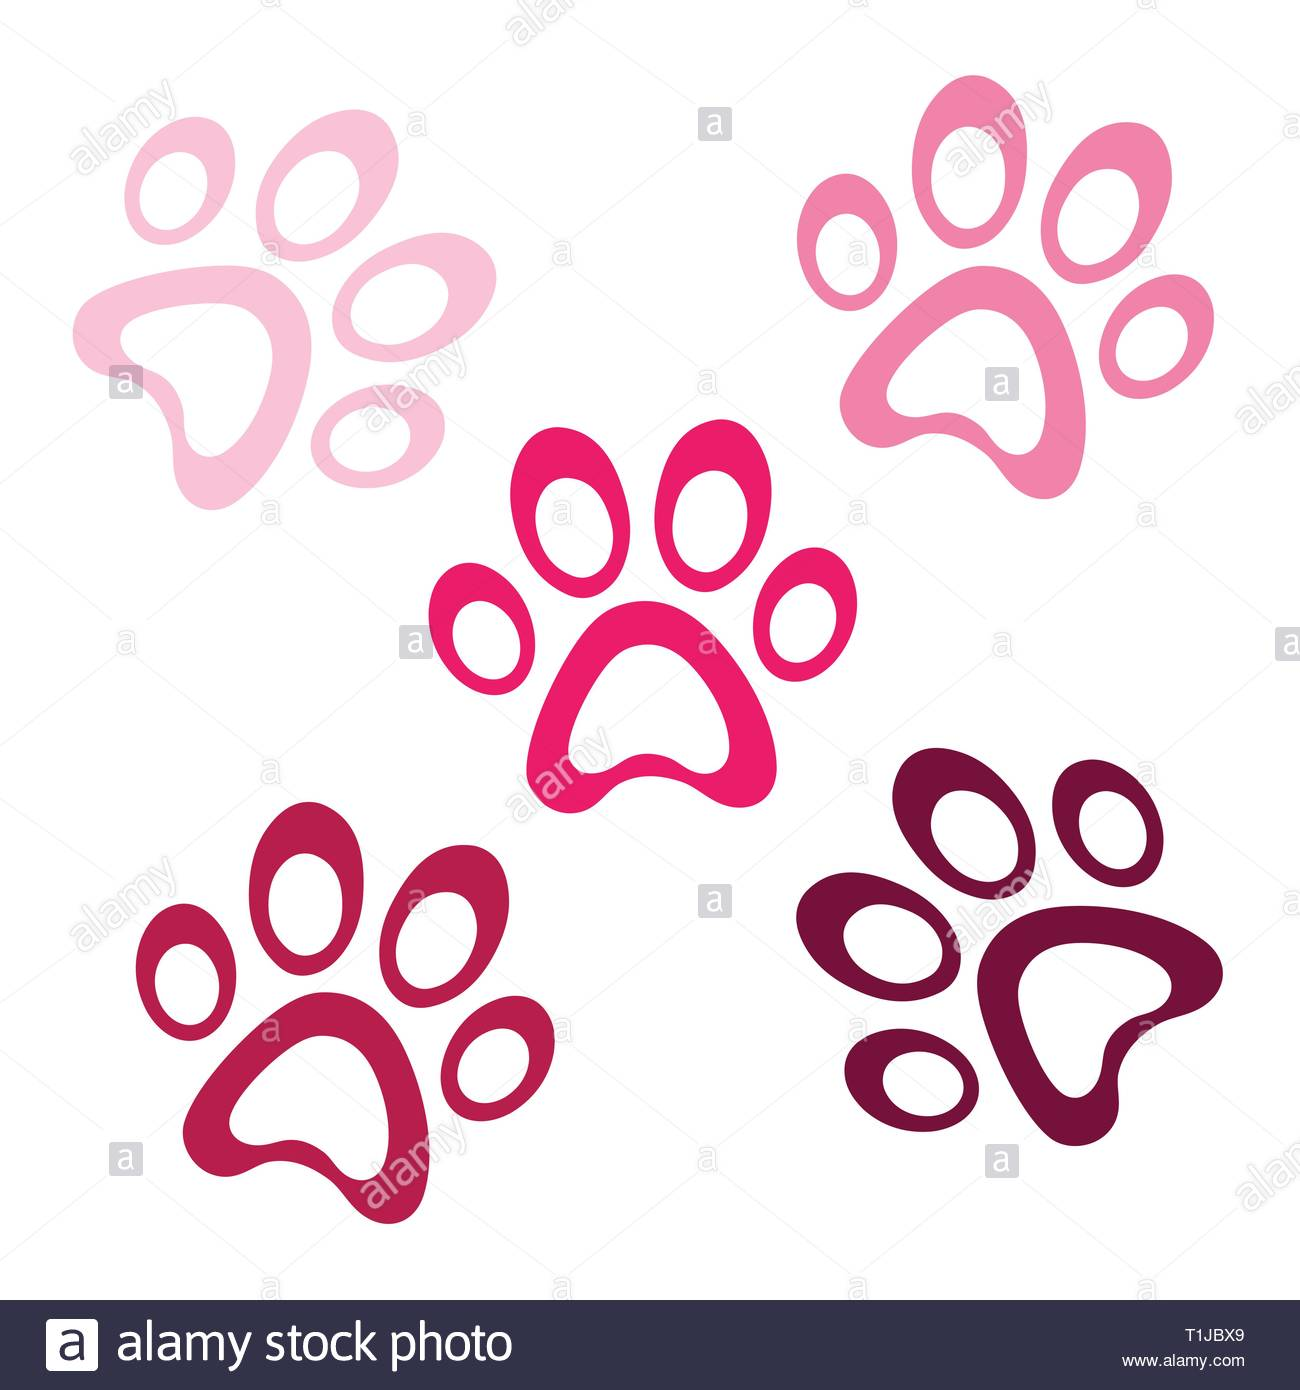 Pink set paws vector shape multicolored icon, animal paw icons isolated, graphic footprint, simple pets element illustration - Stock Vector